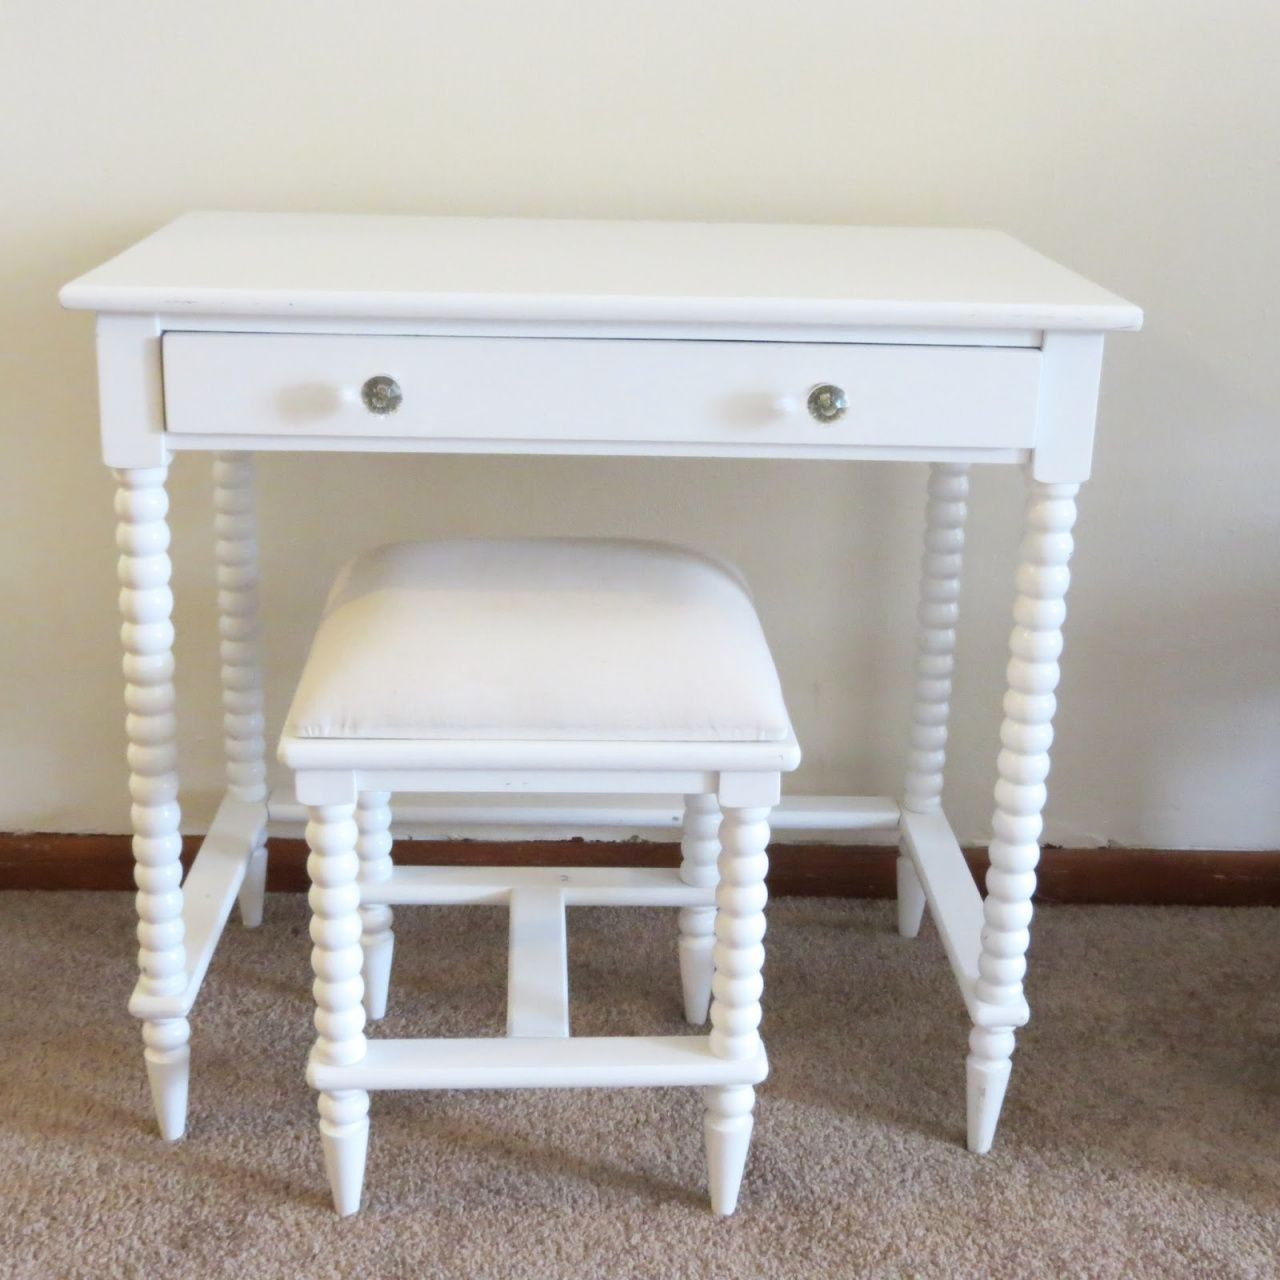 Vanity Table Without Mirror Luxury Home Office Furniture Check More At Http Www Nikkitsfun Com V Small Vanity Table Bedroom Vanity Table White Vanity Table